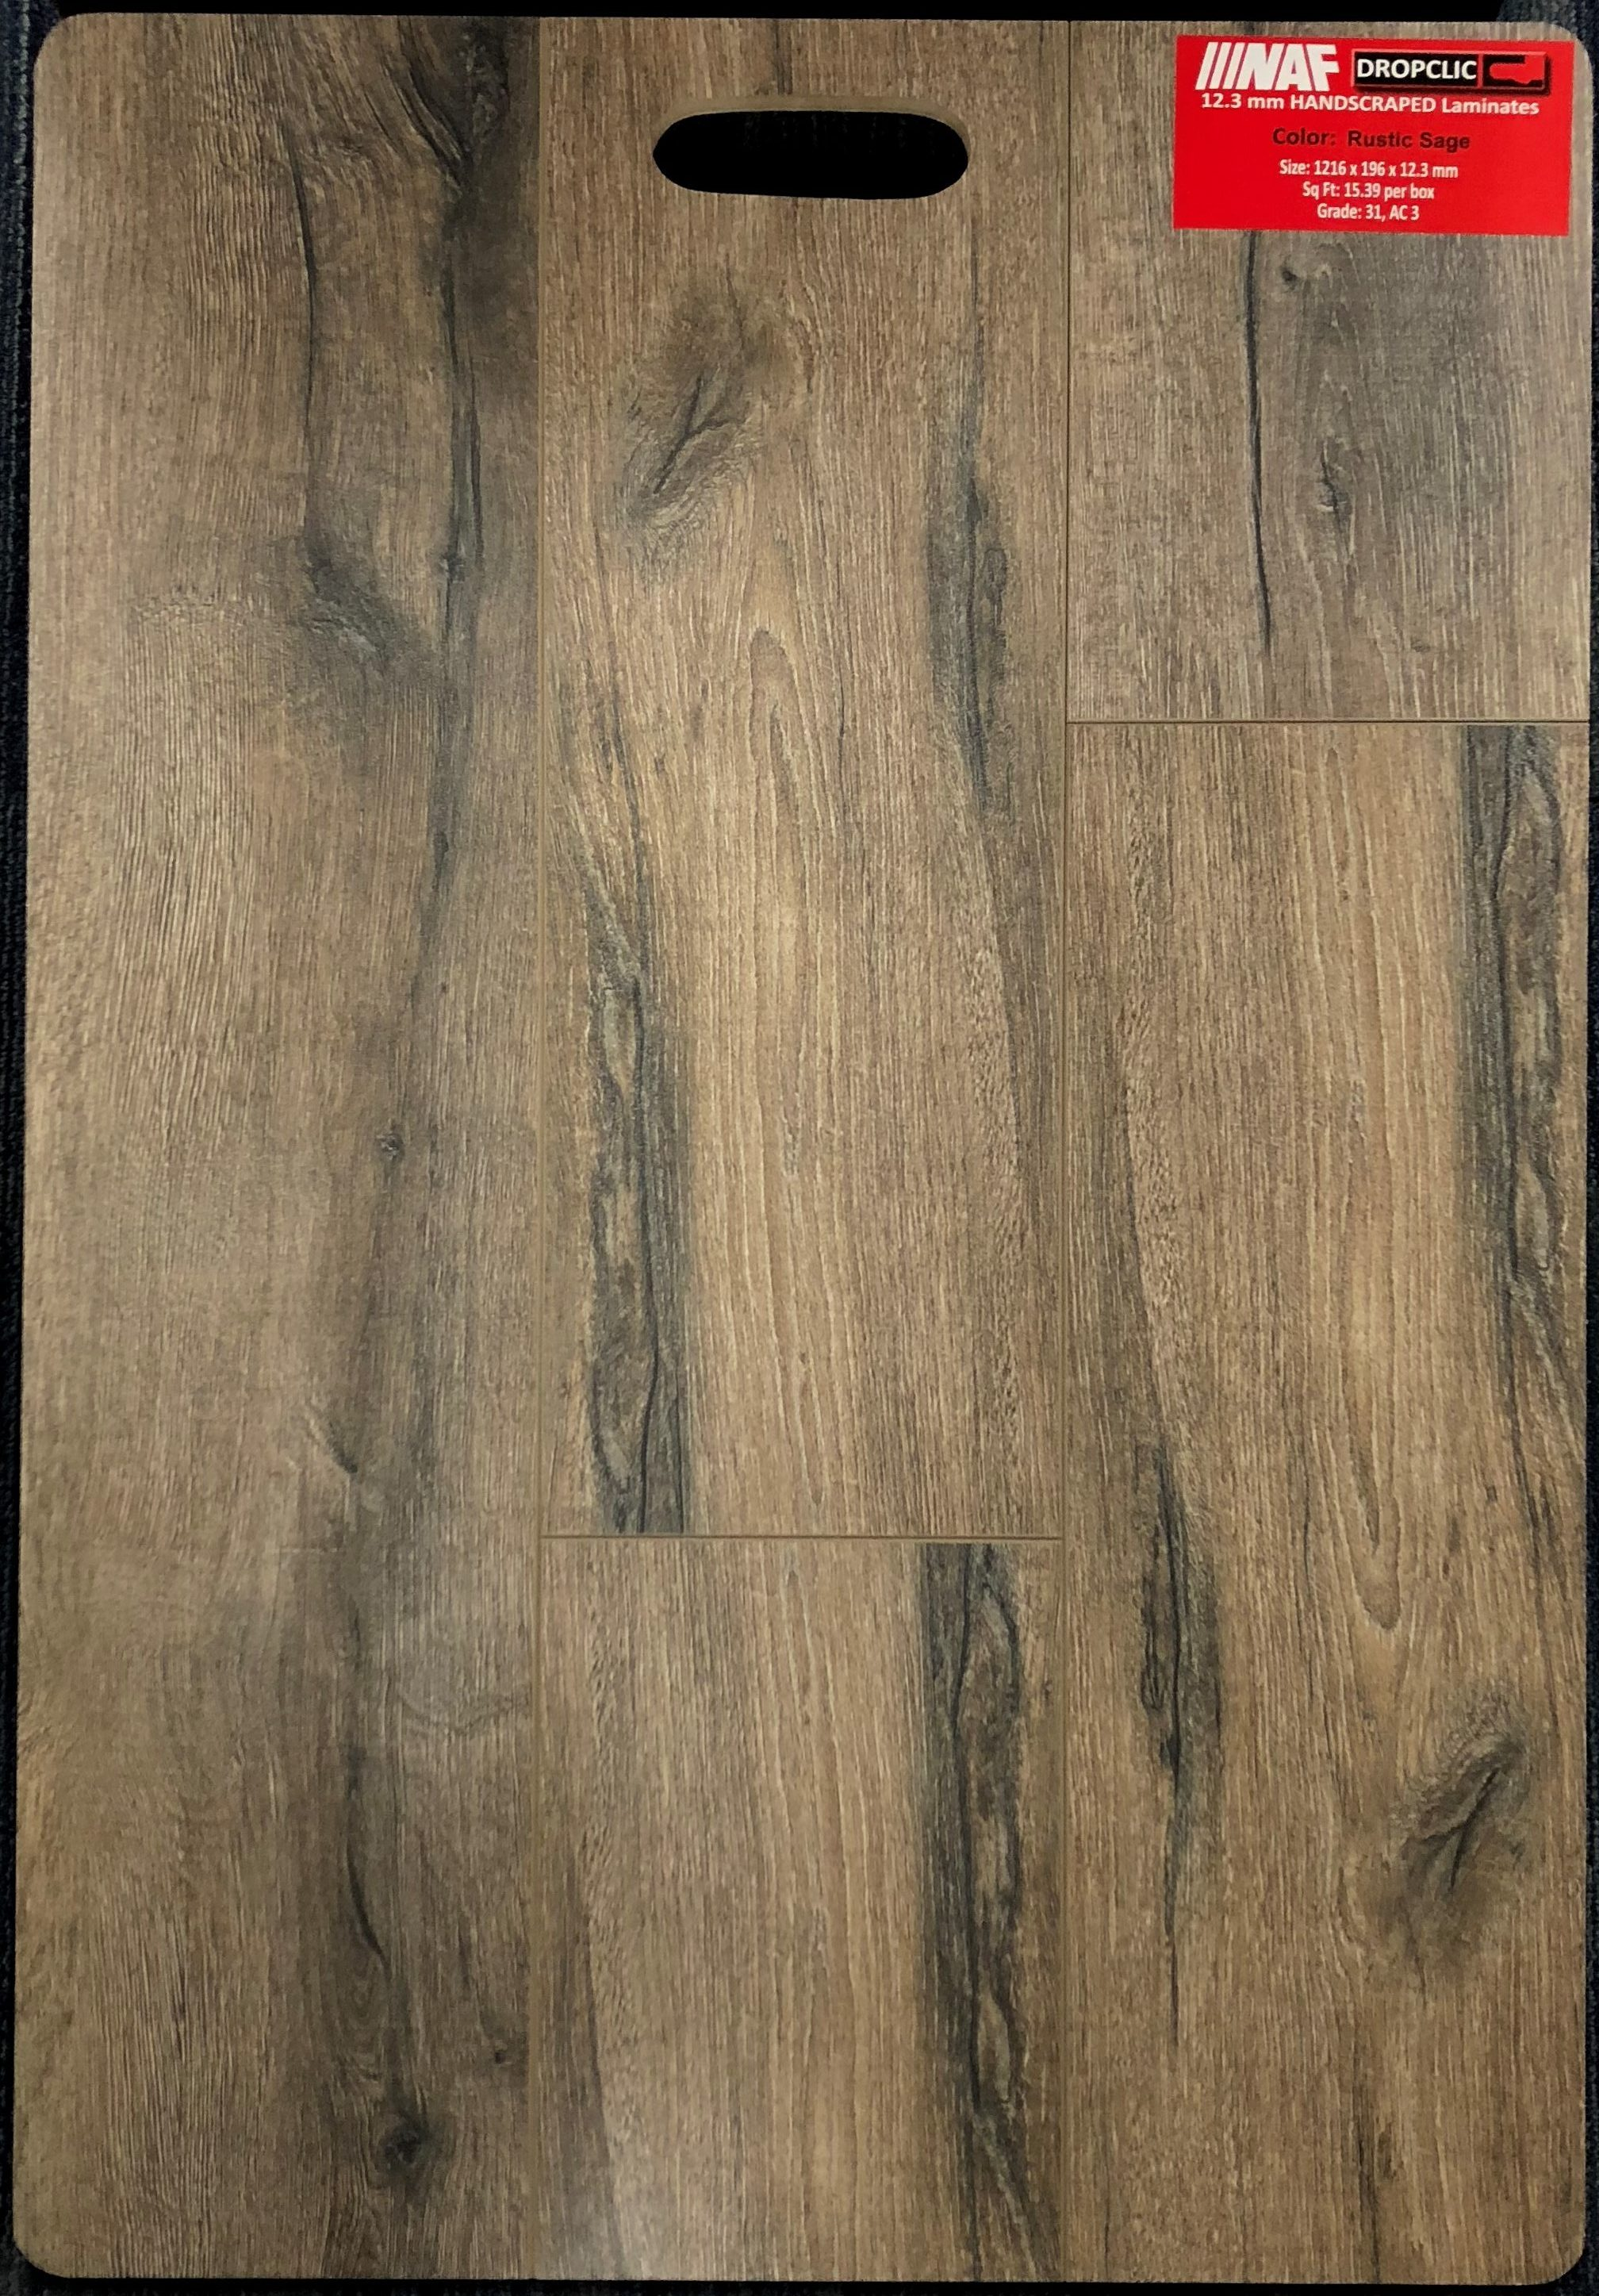 Rustic Sage NAF 12.3mm Handscraped Laminate Flooring Image